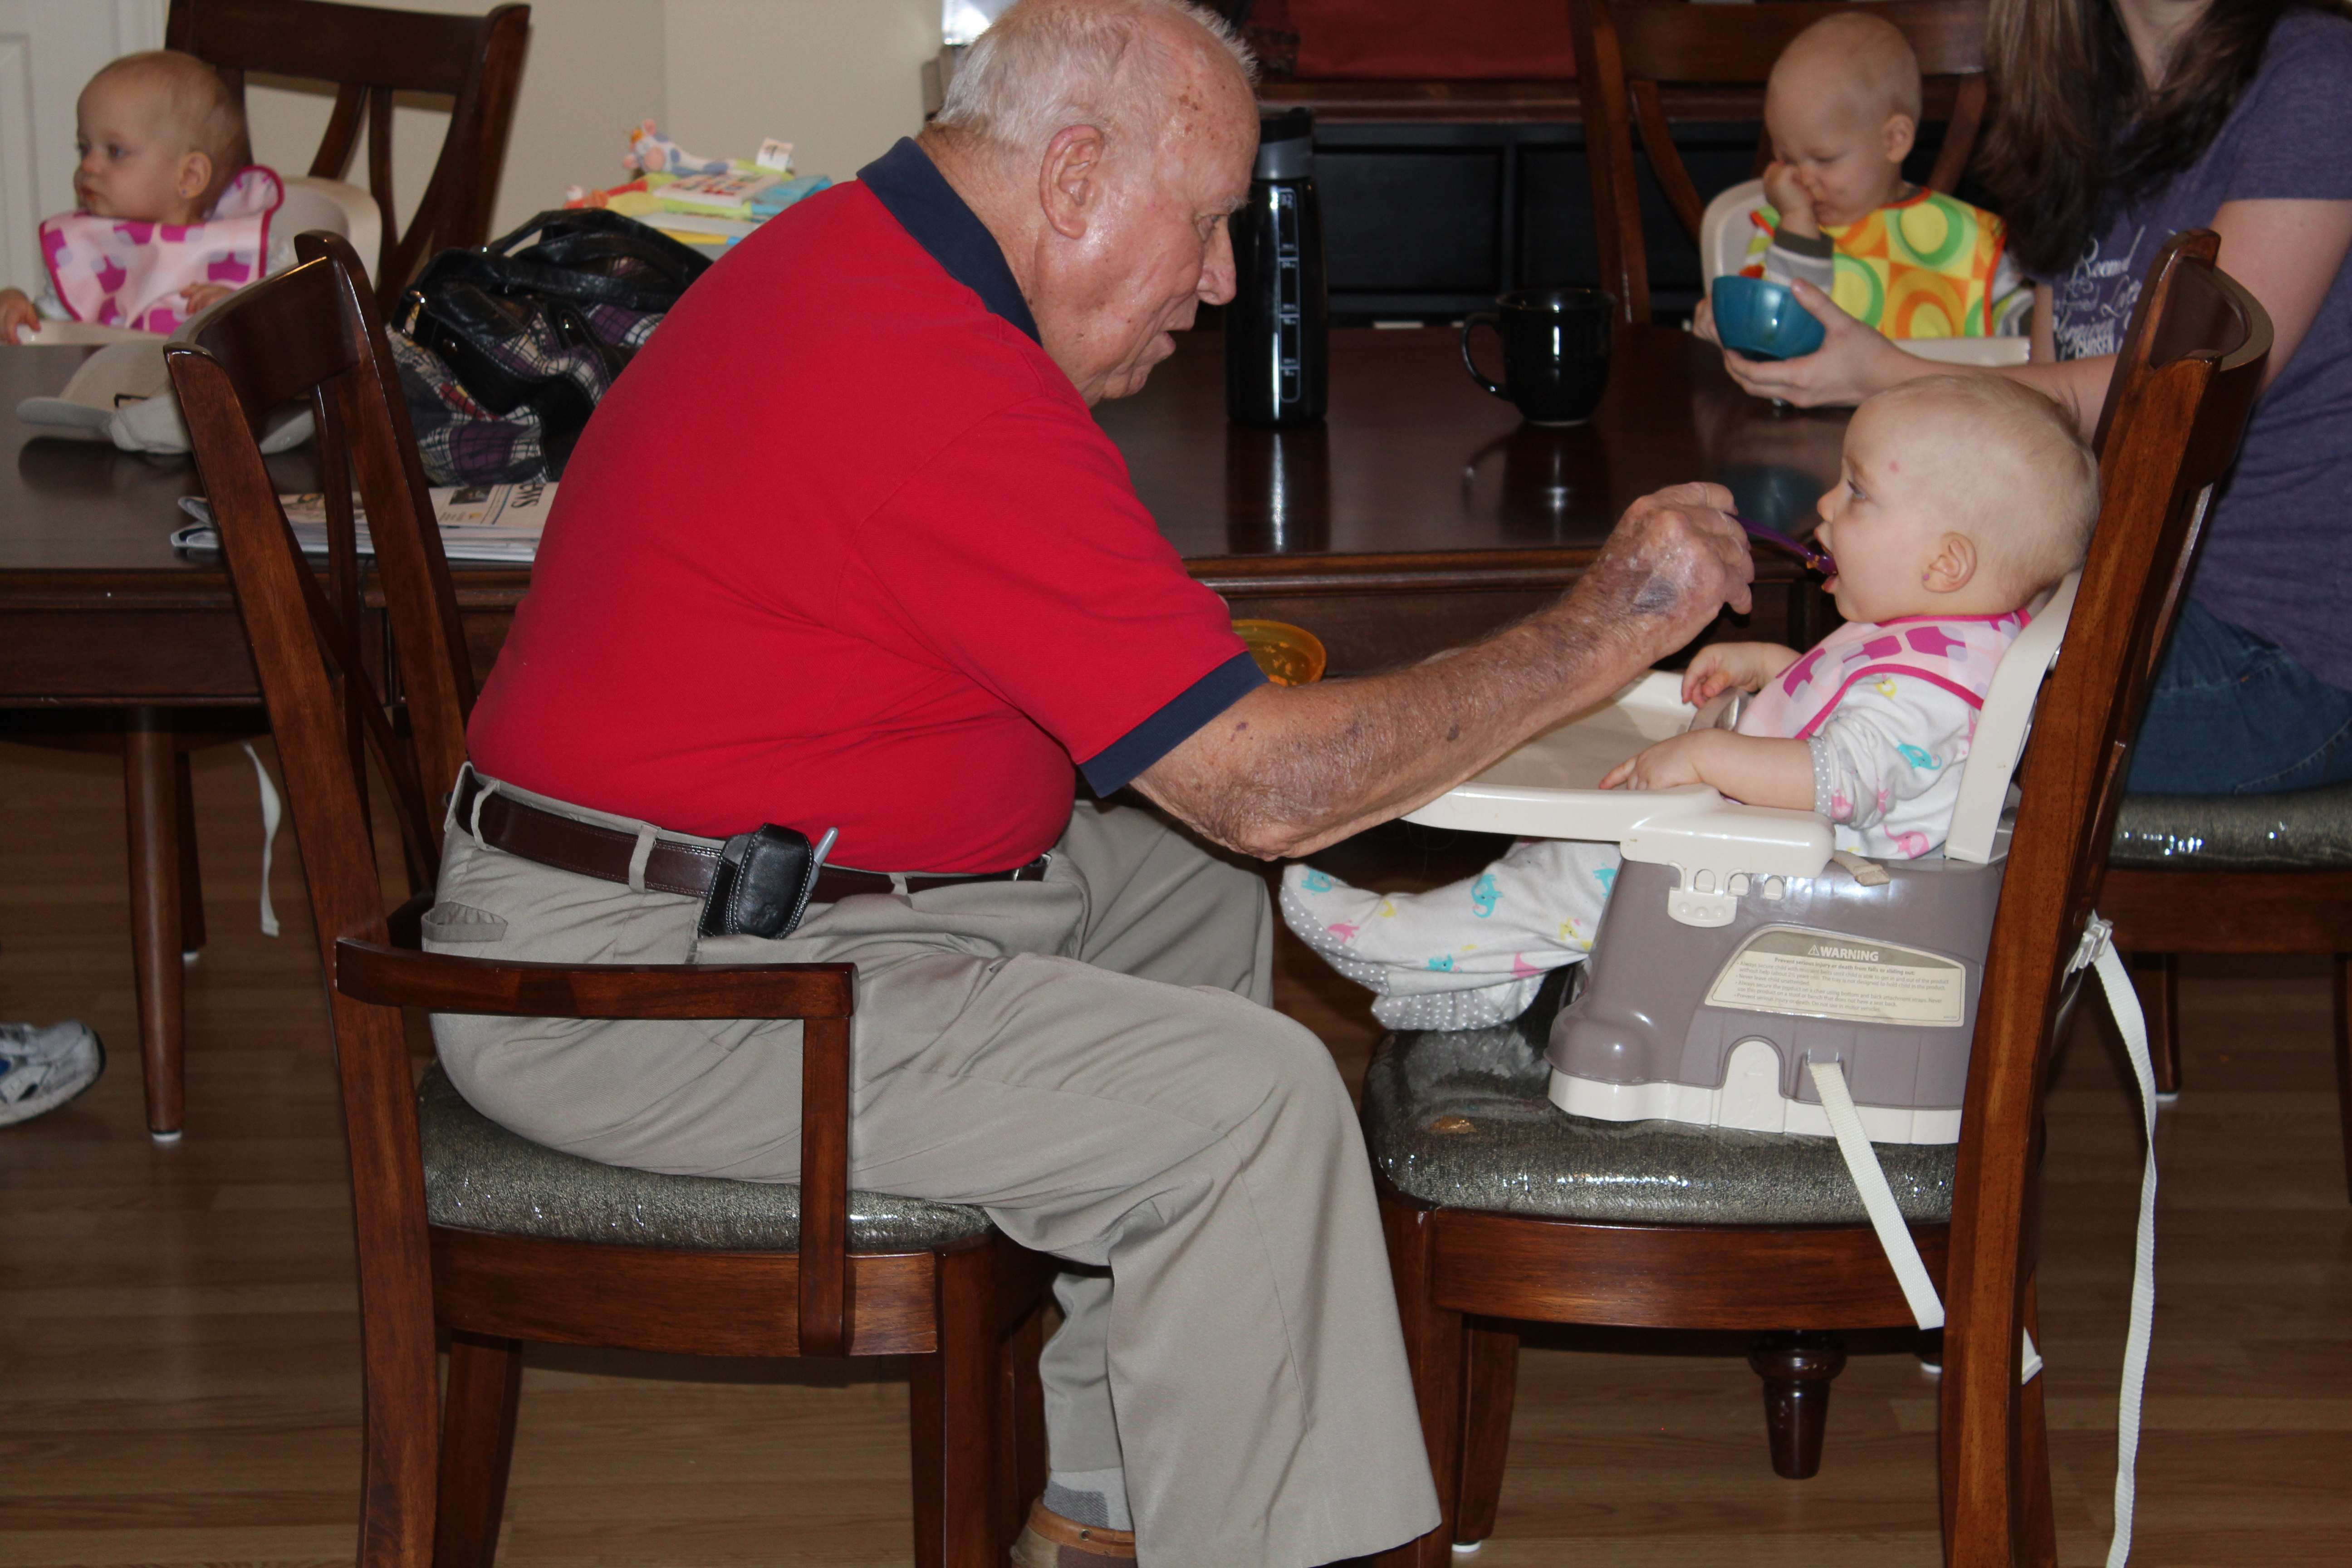 Feeding Makenna - he did such a great job! =)